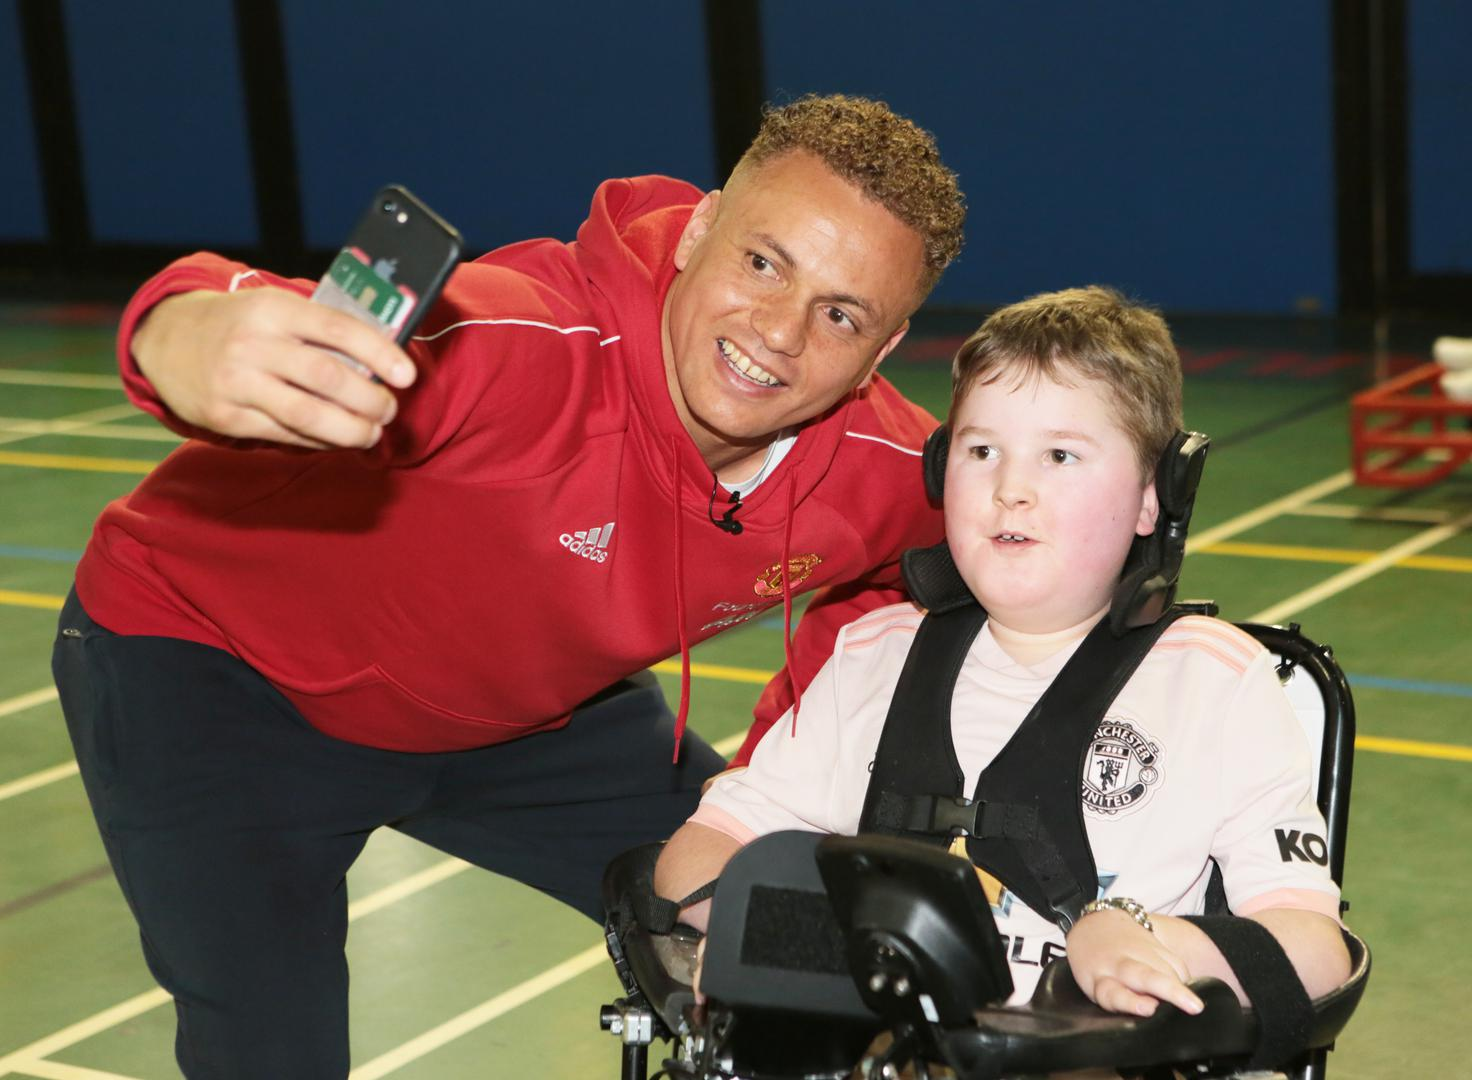 Wes Brown poses for a selfie with a young Manchester United Foundation powerchair player